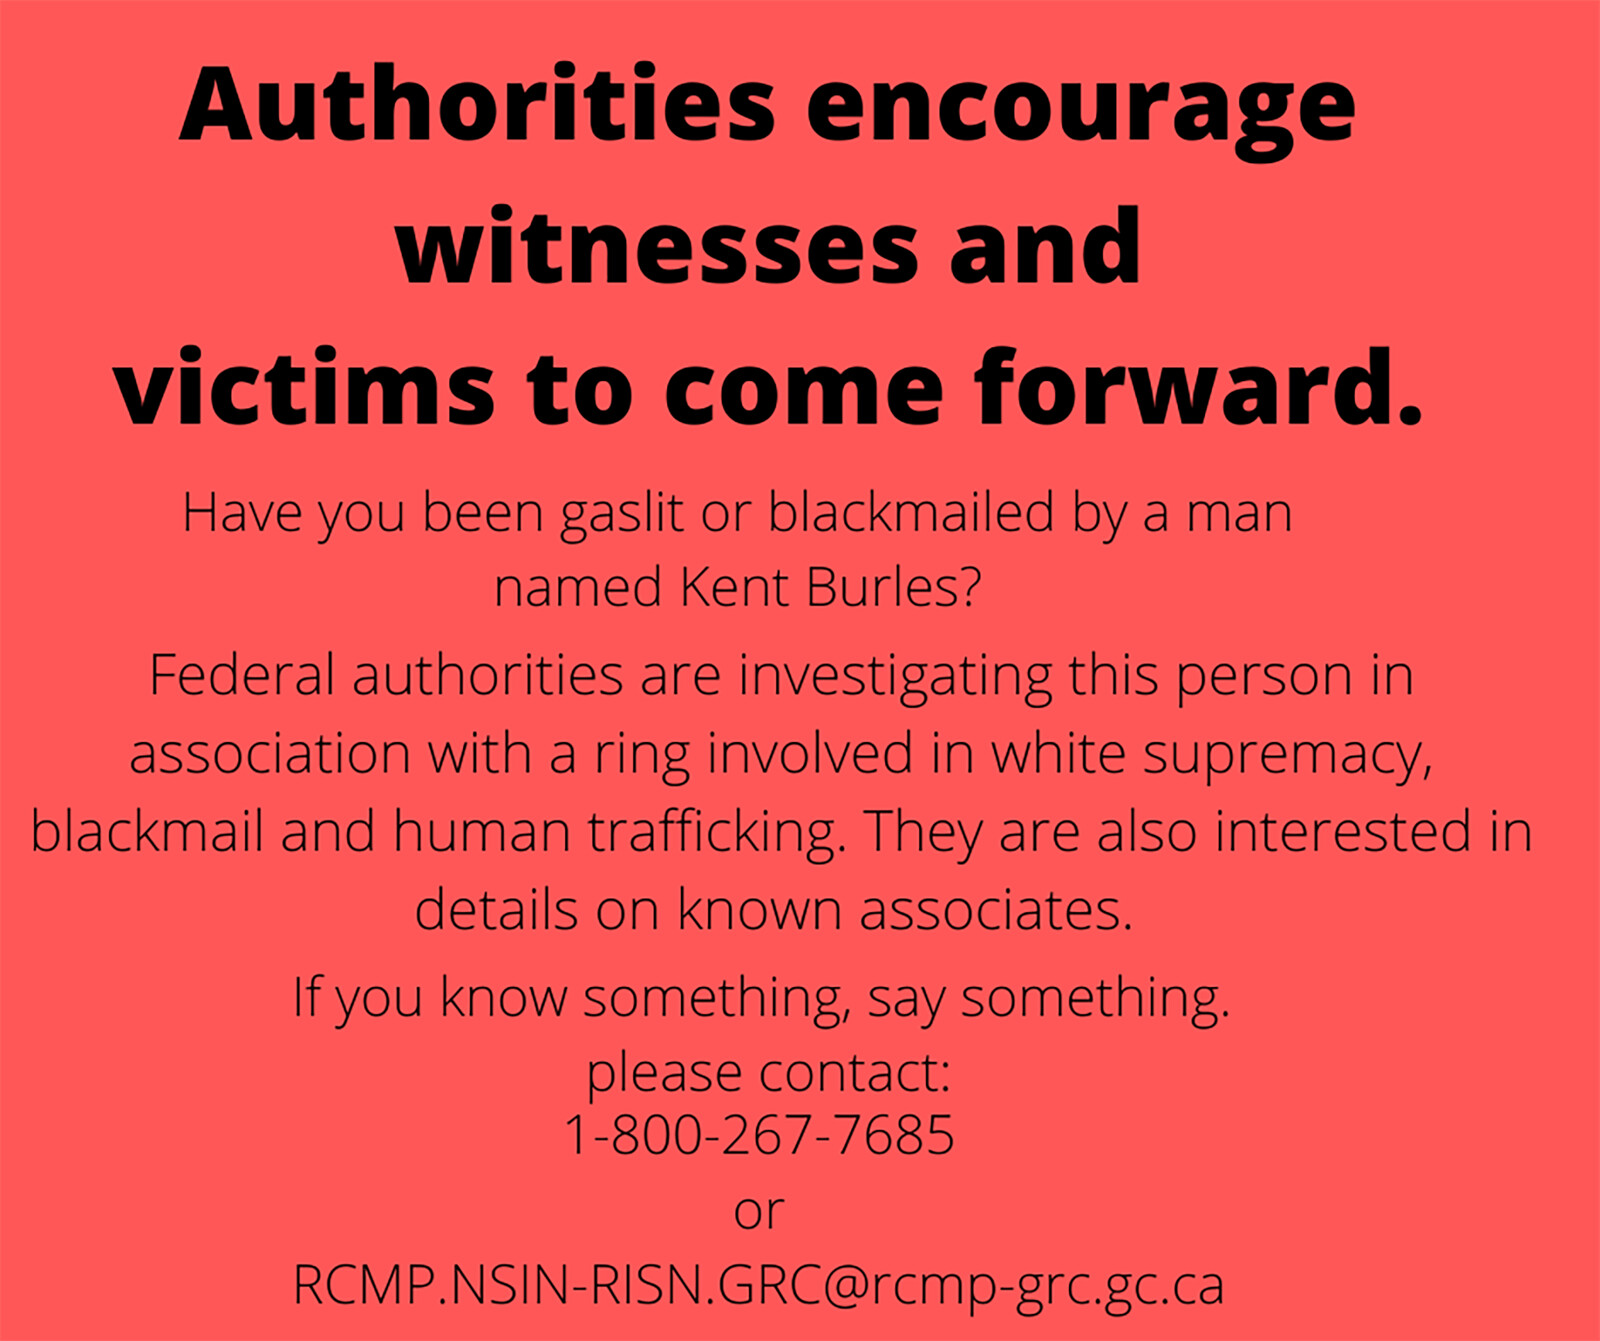 Authorities encourage witnesses and victims to come forward.